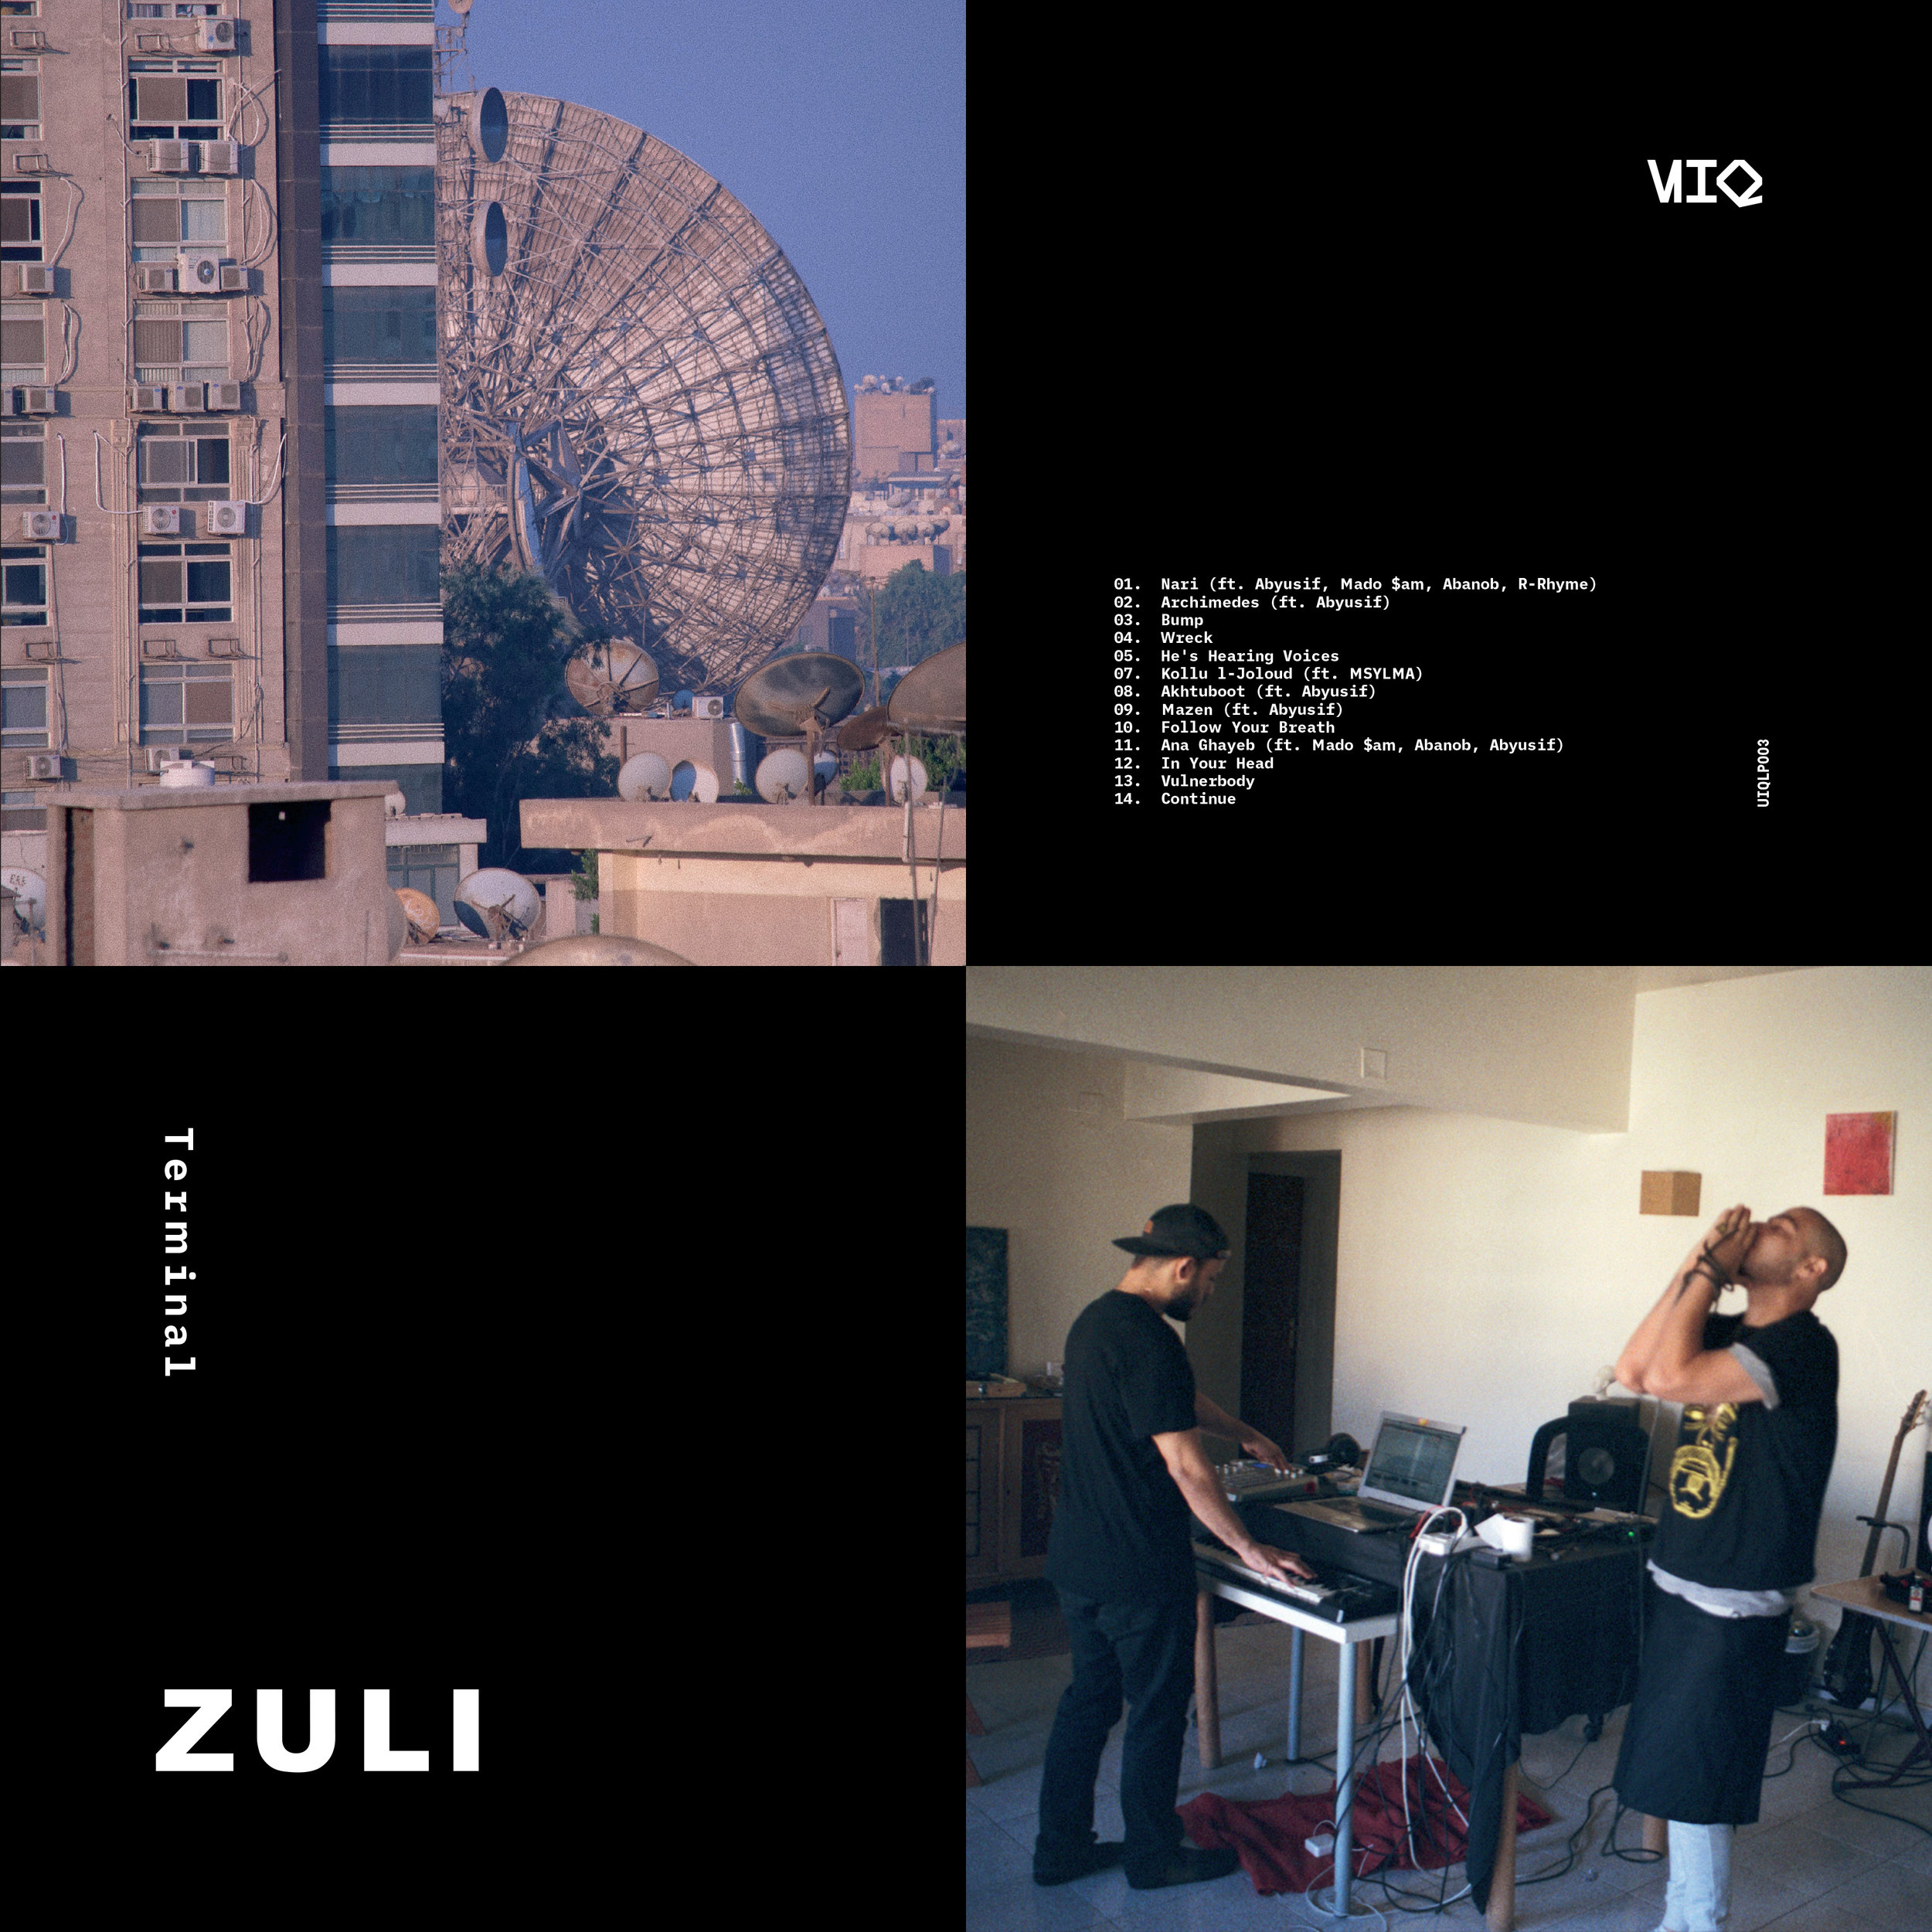 One of our favorite artists, in the world, Zuli gets ready to drop his album for UIQ go check out the preview track below, premiered on FACT and make sure to check out his mix for us at JEROME